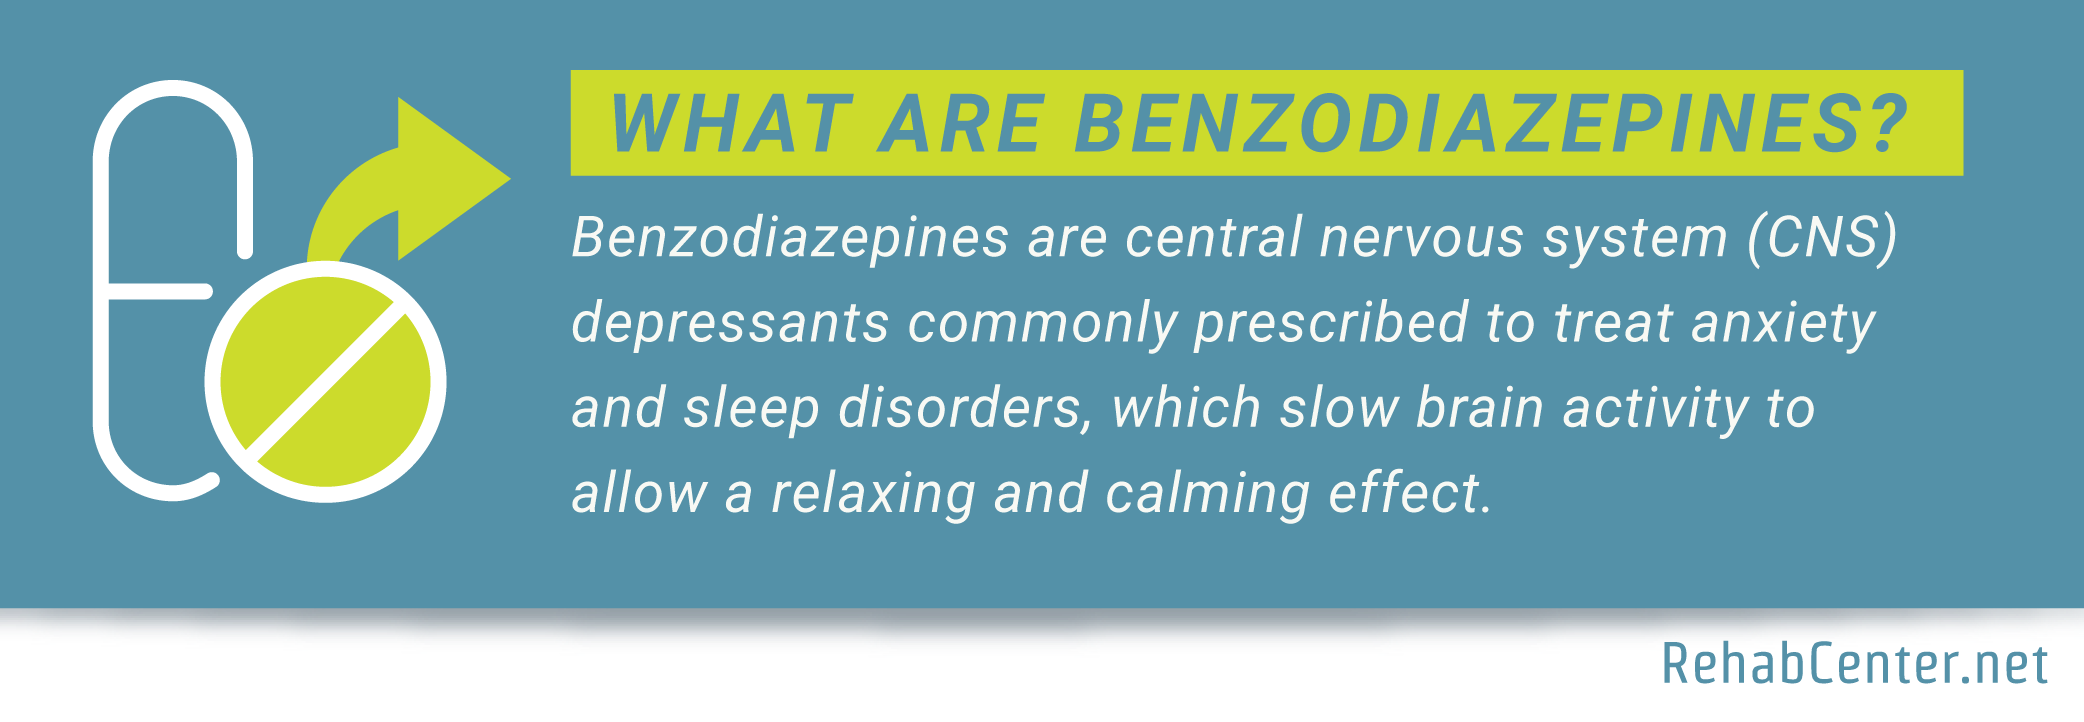 RehabCenter.net How To Get Off Benzodiazepines Central Nervous System